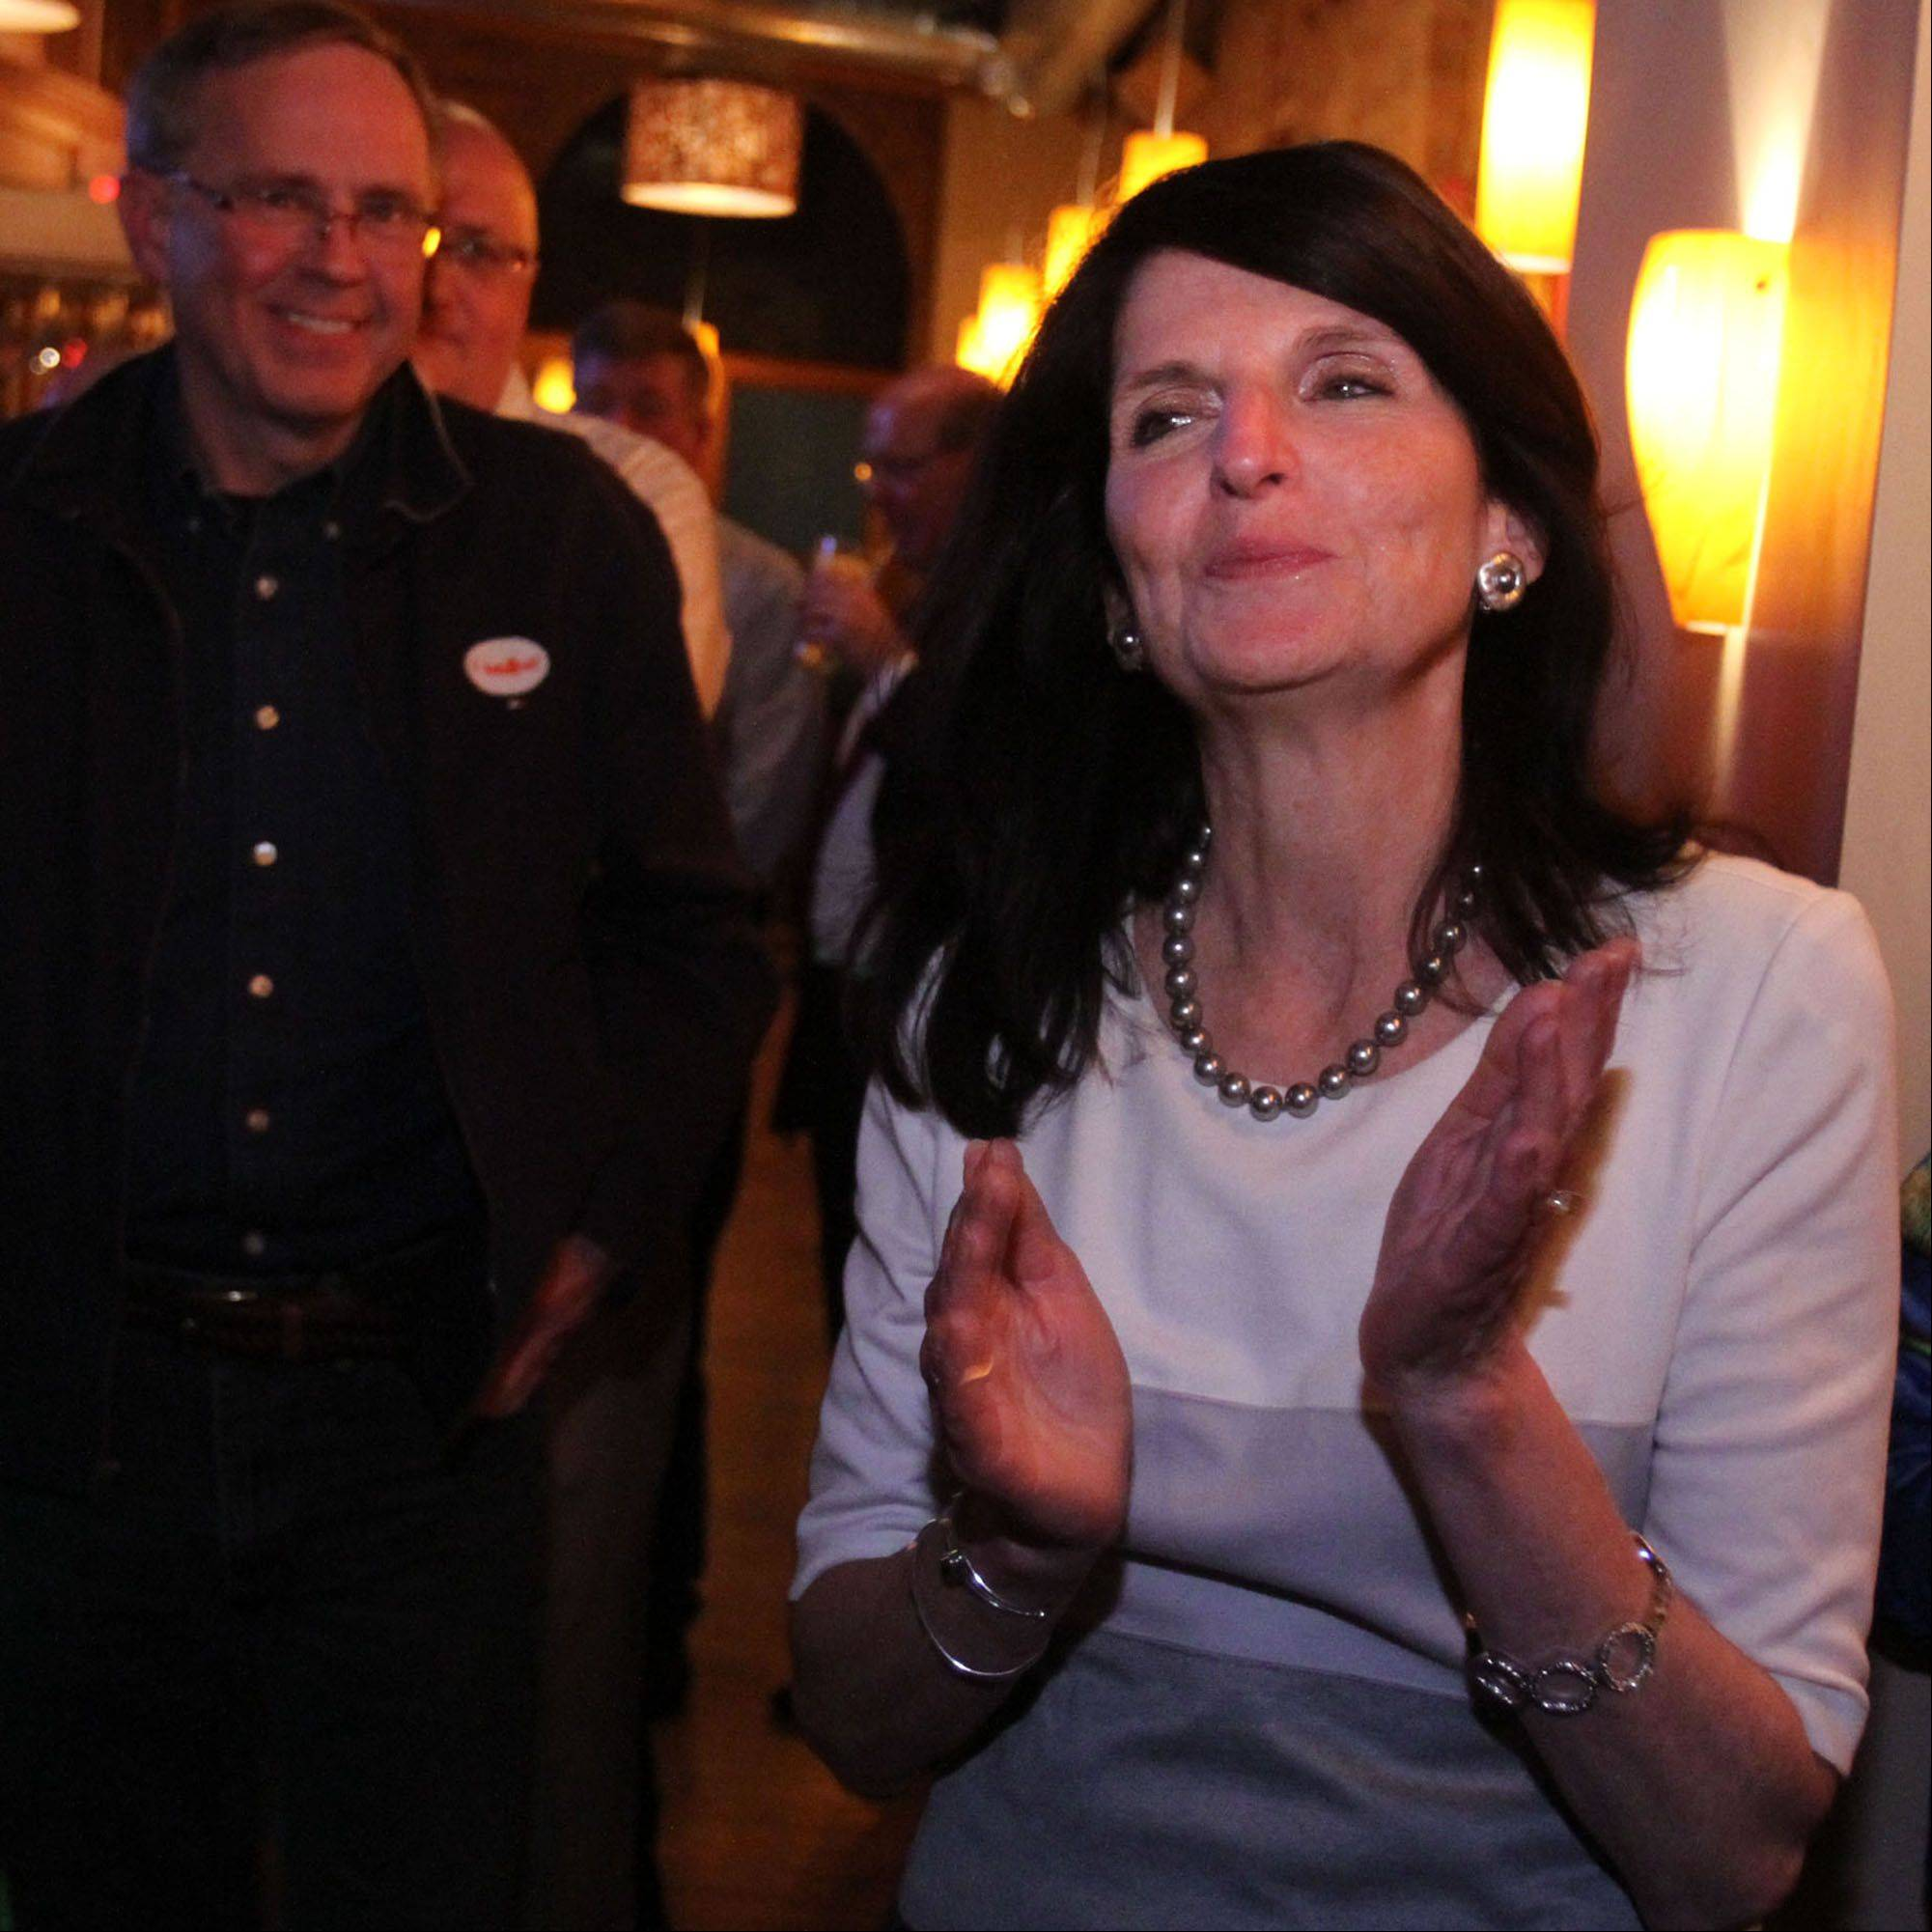 Barrington Village President Karen Darch celebrates her re-election Tuesday at McGonigal�s Pub in Barrington. Although final vote totals are pending, preliminary results show Darch cruised to victory over write-in candidate Mike Kozel.